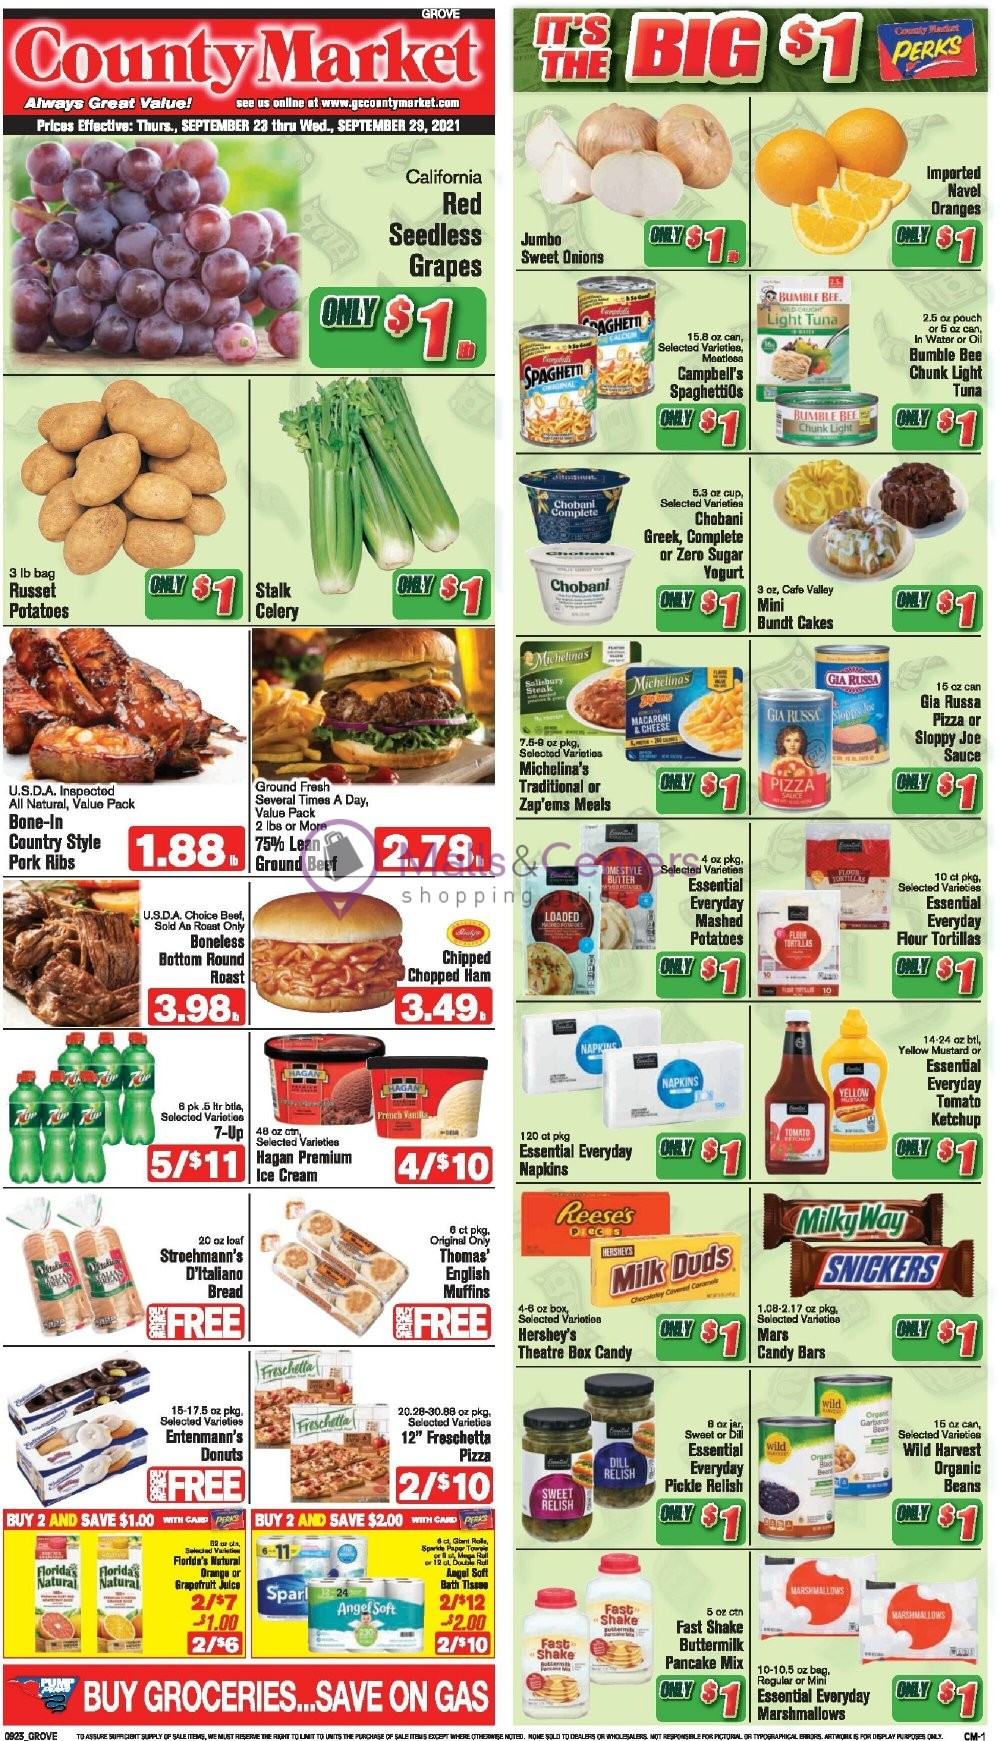 weekly ads County Market Grove City - page 1 - mallscenters.com